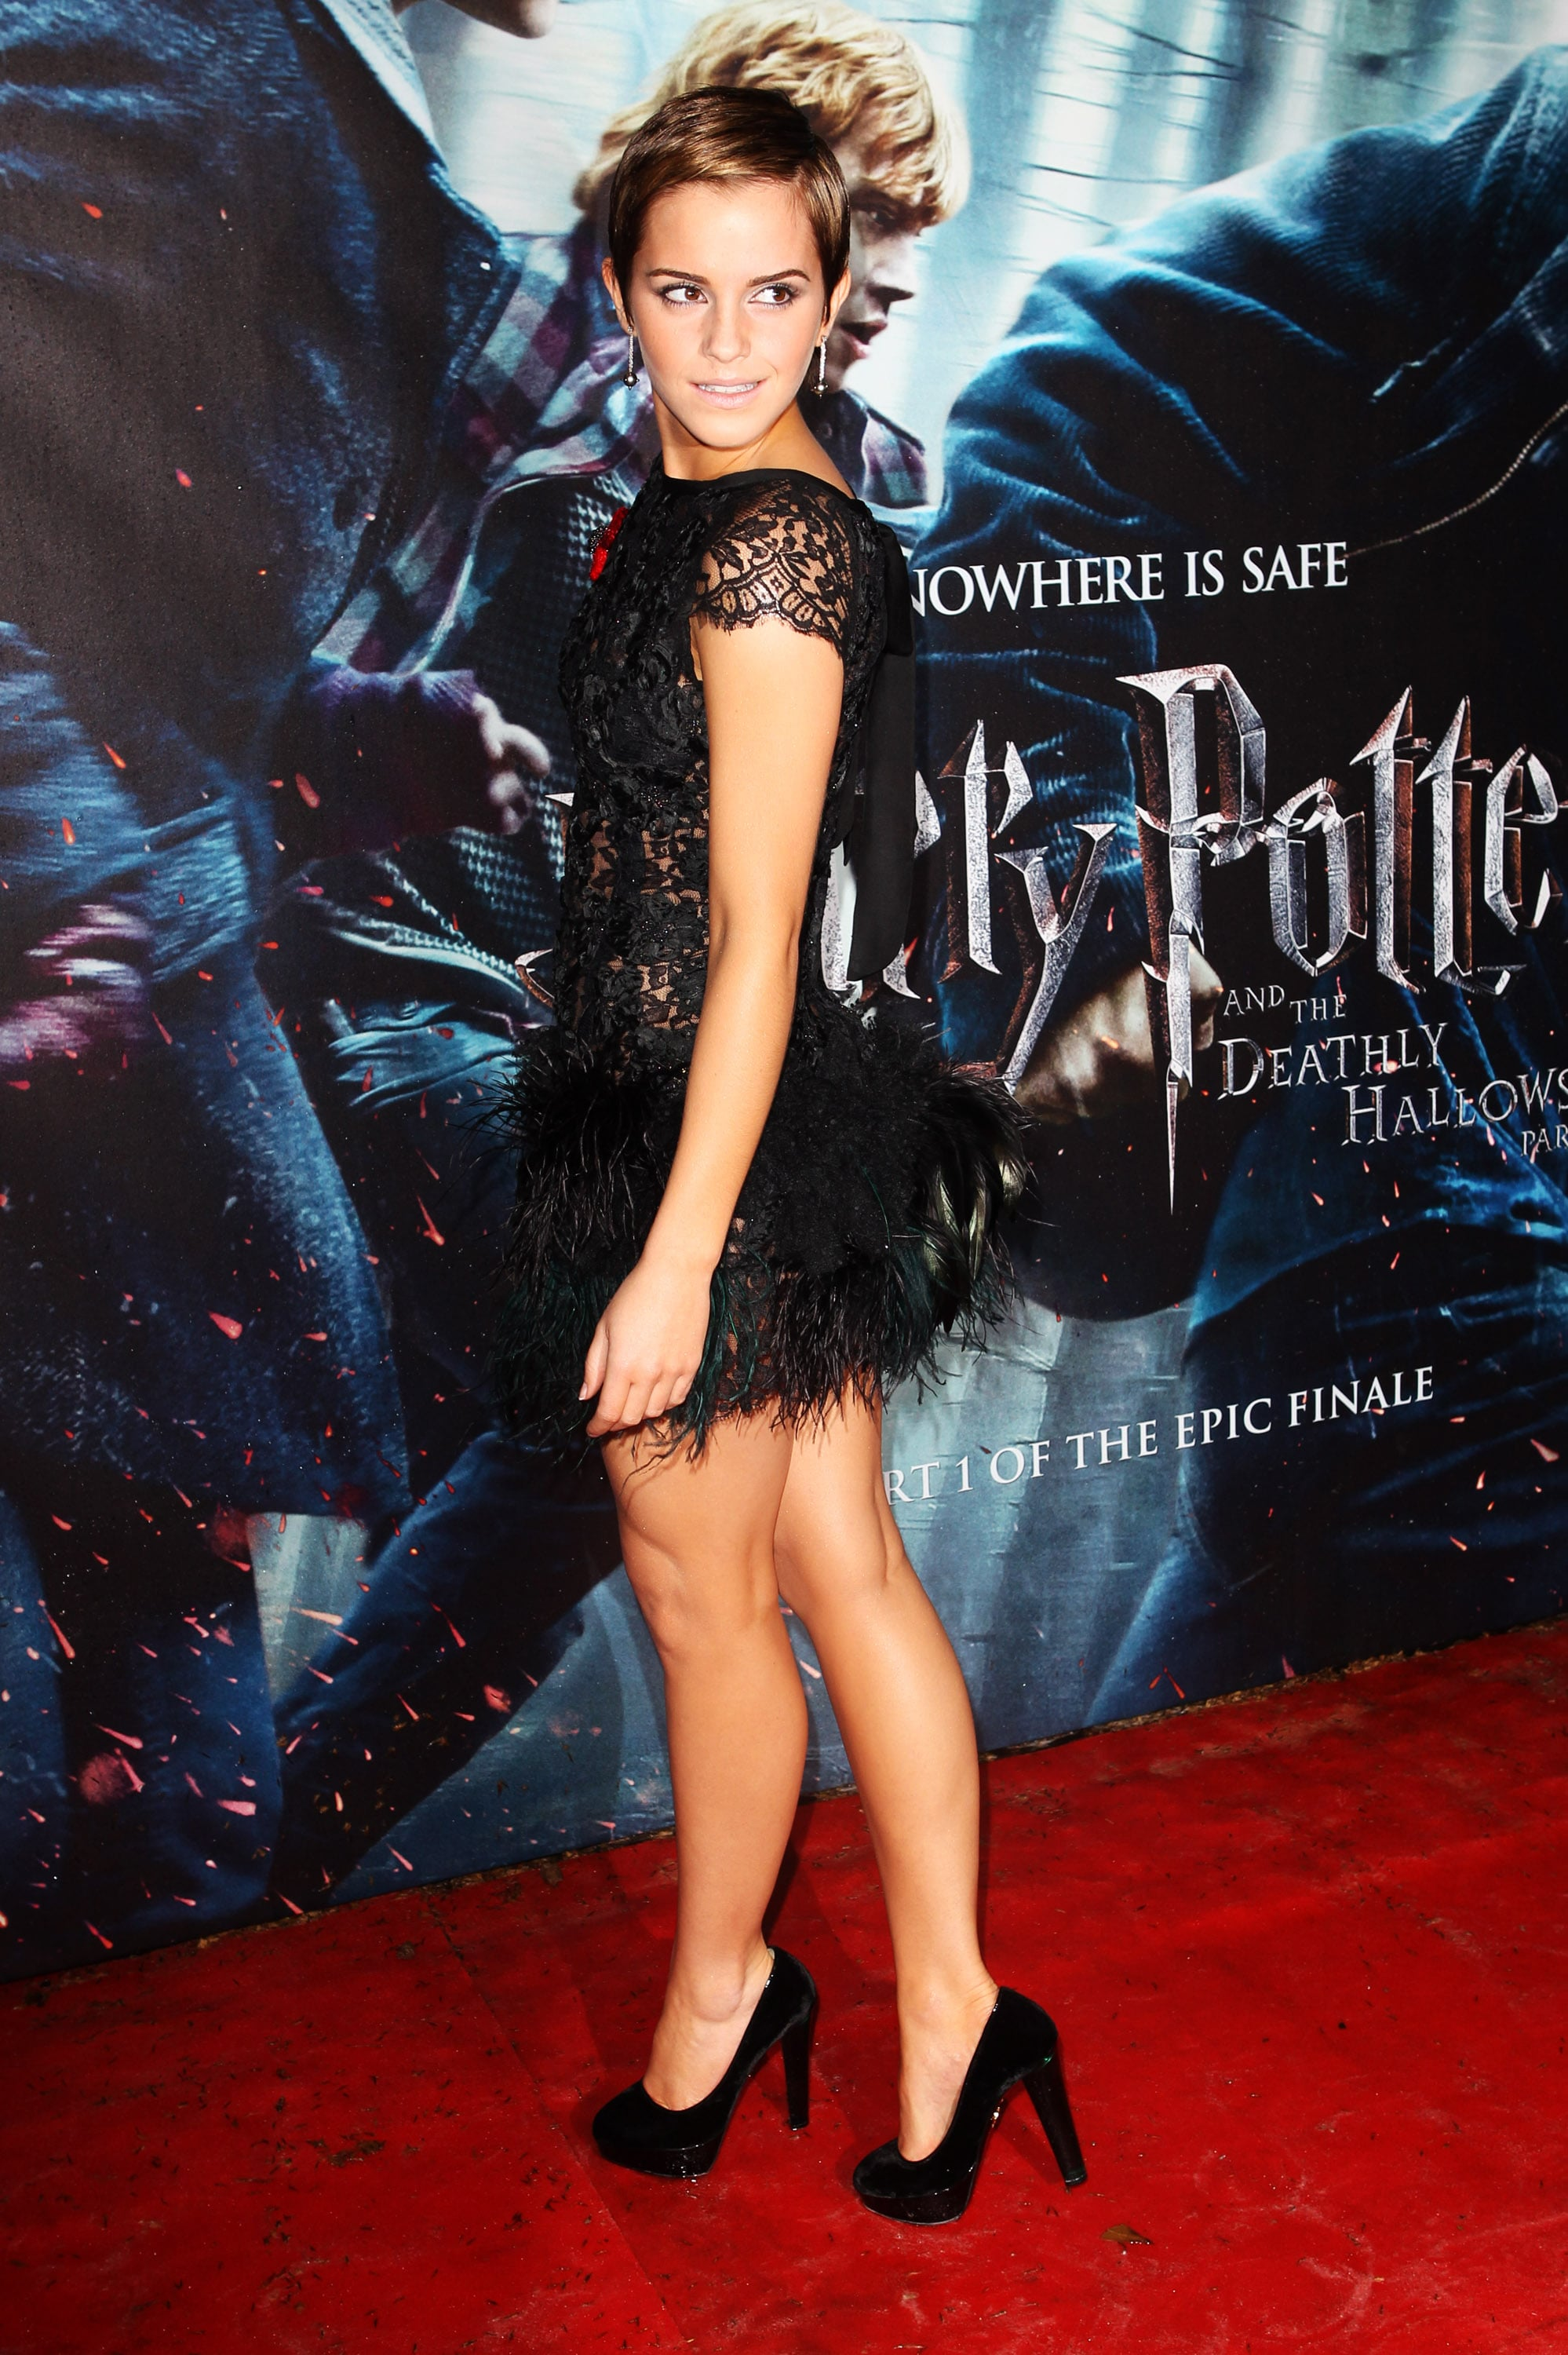 Emma Watson Harry Potter And The Deathly Hallows Part 2 Premiere Dress Pictures of Emma Watso...